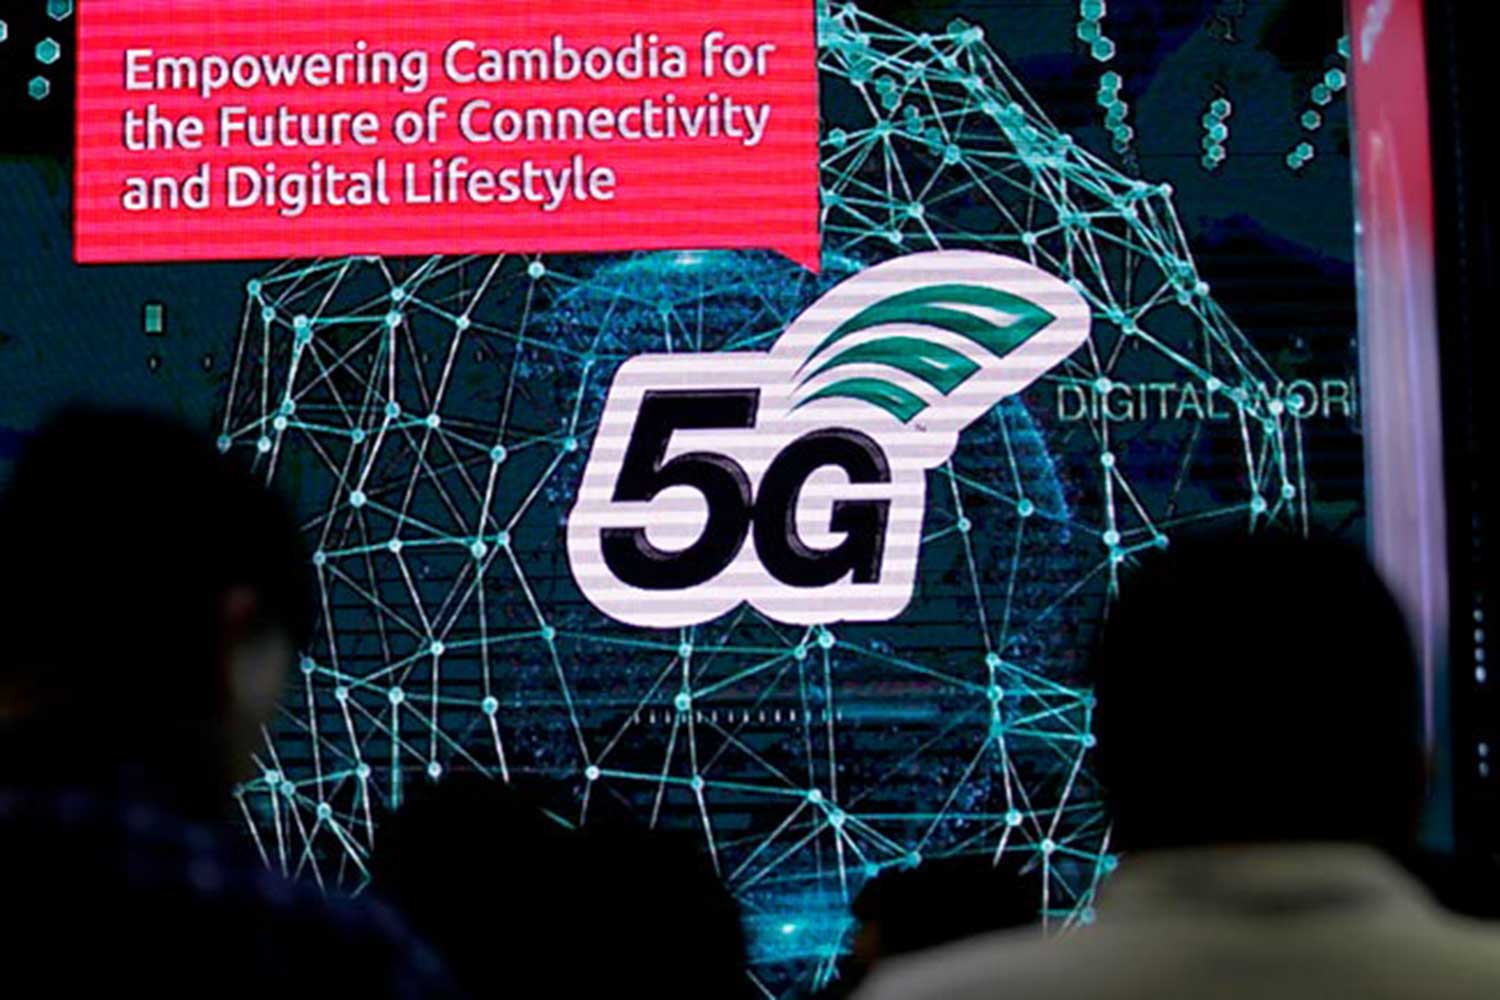 Some telecos are expected to lauch 5G services in Cambodia before the end of the year. (Khmer Times photo)